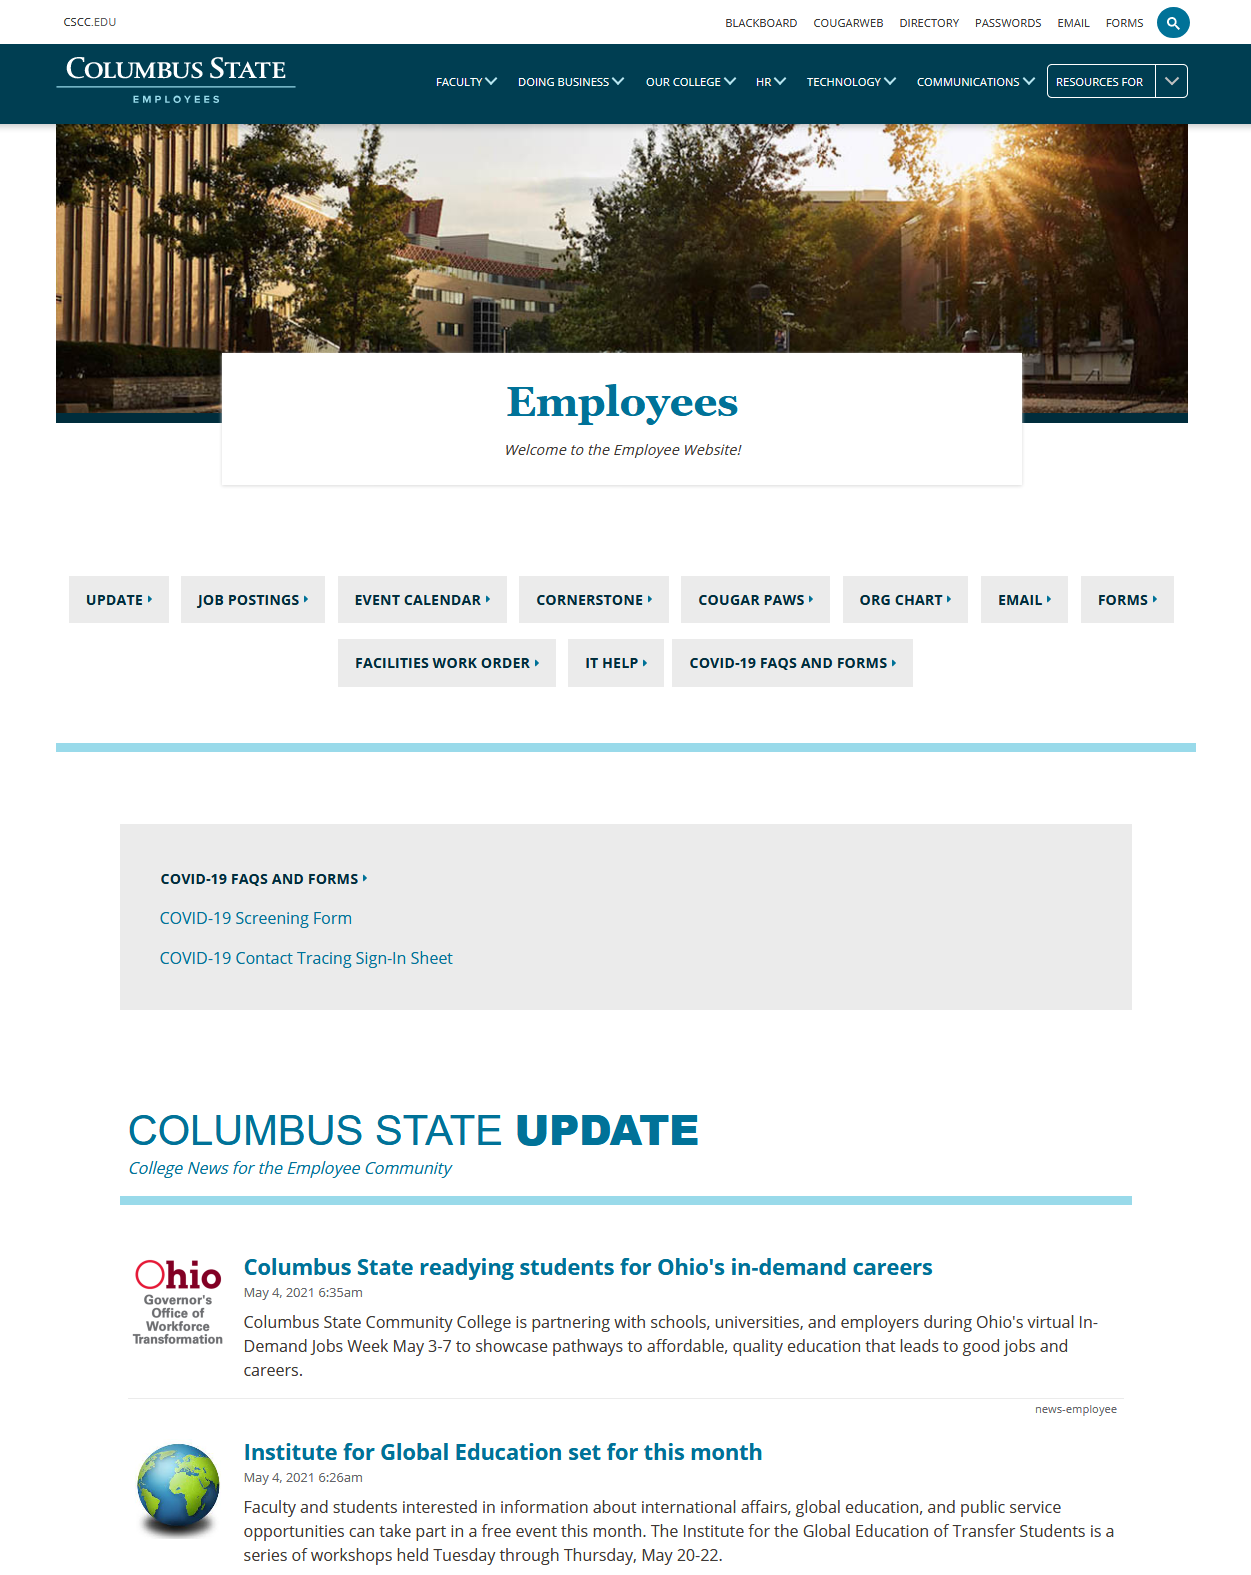 Employee Website home page